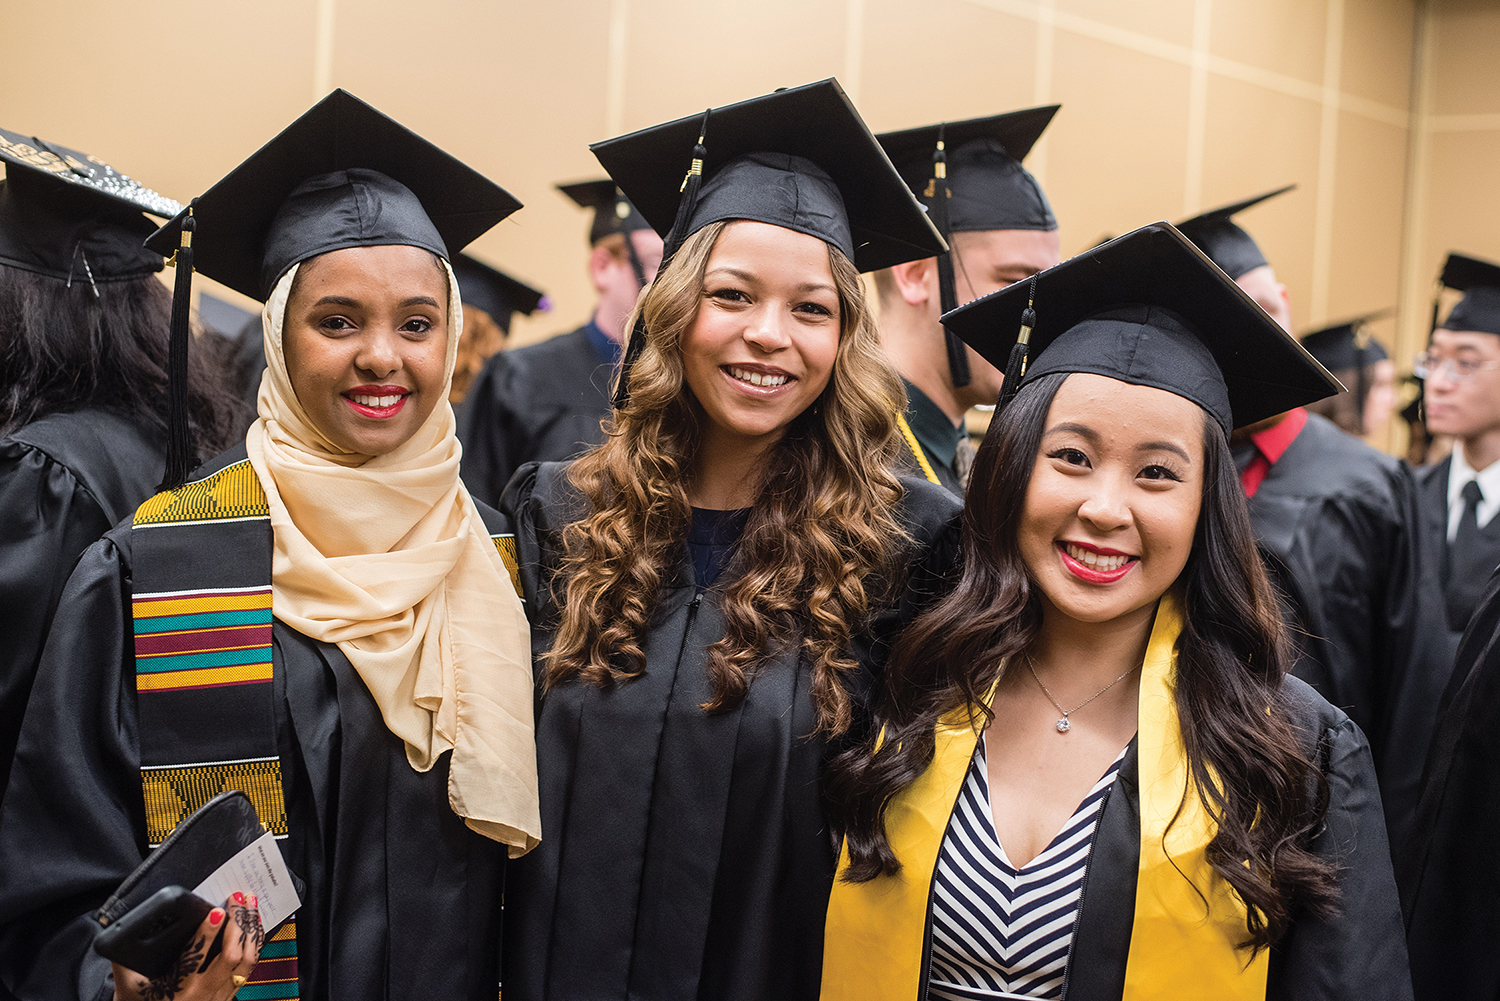 University of Minnesota Rochester graduates smiling after commencement